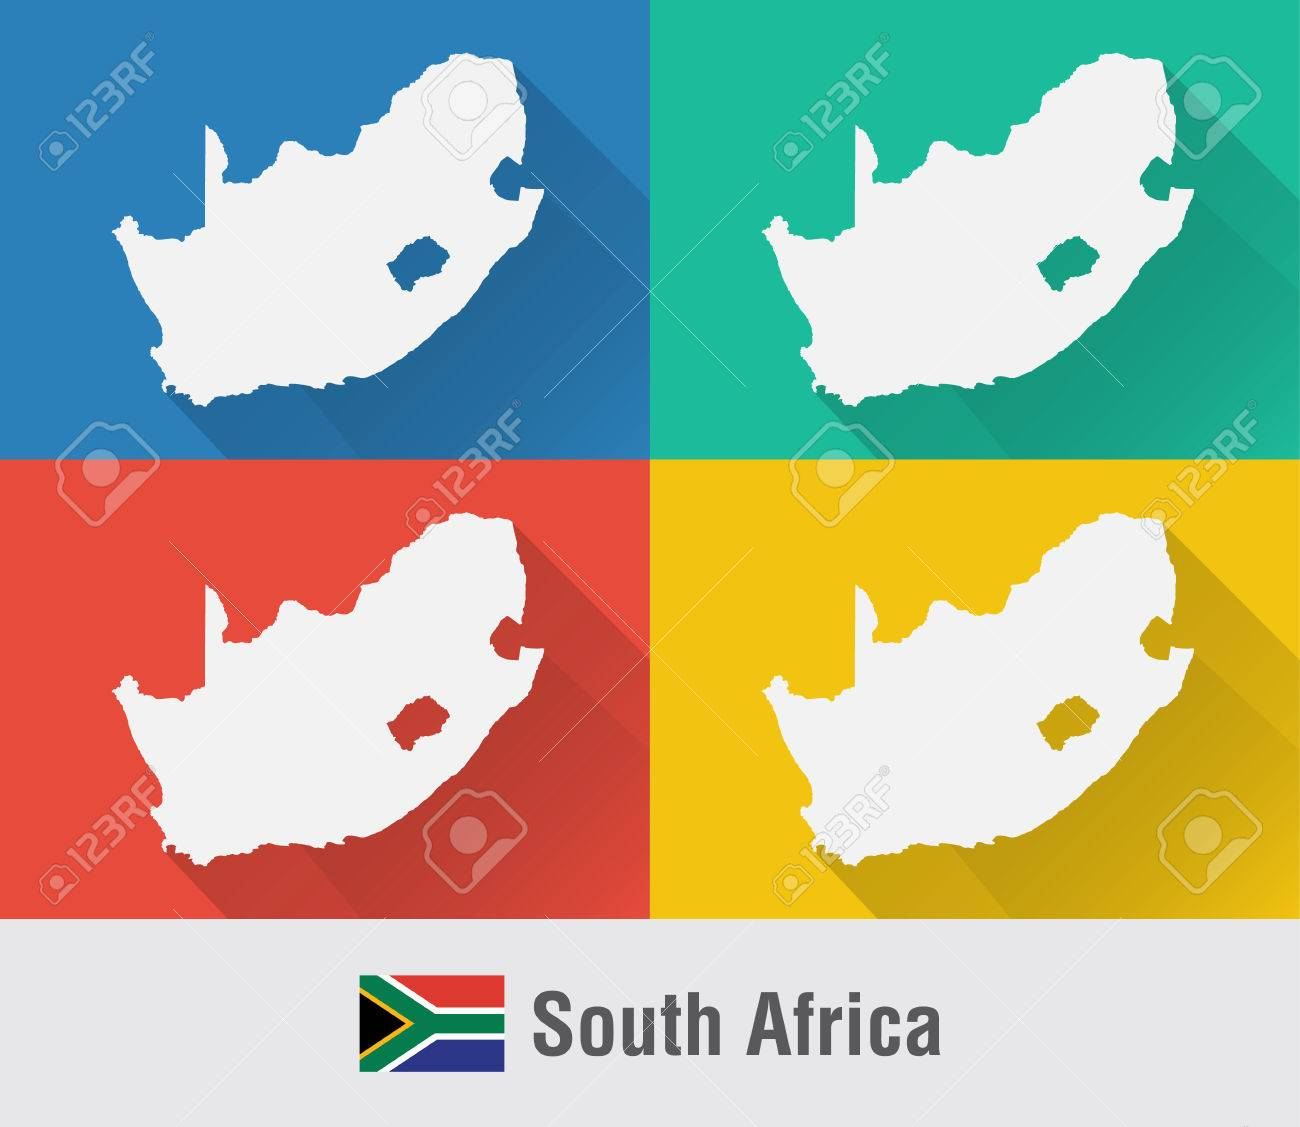 South Africa world map in flat style with 4 colors. Modern map..